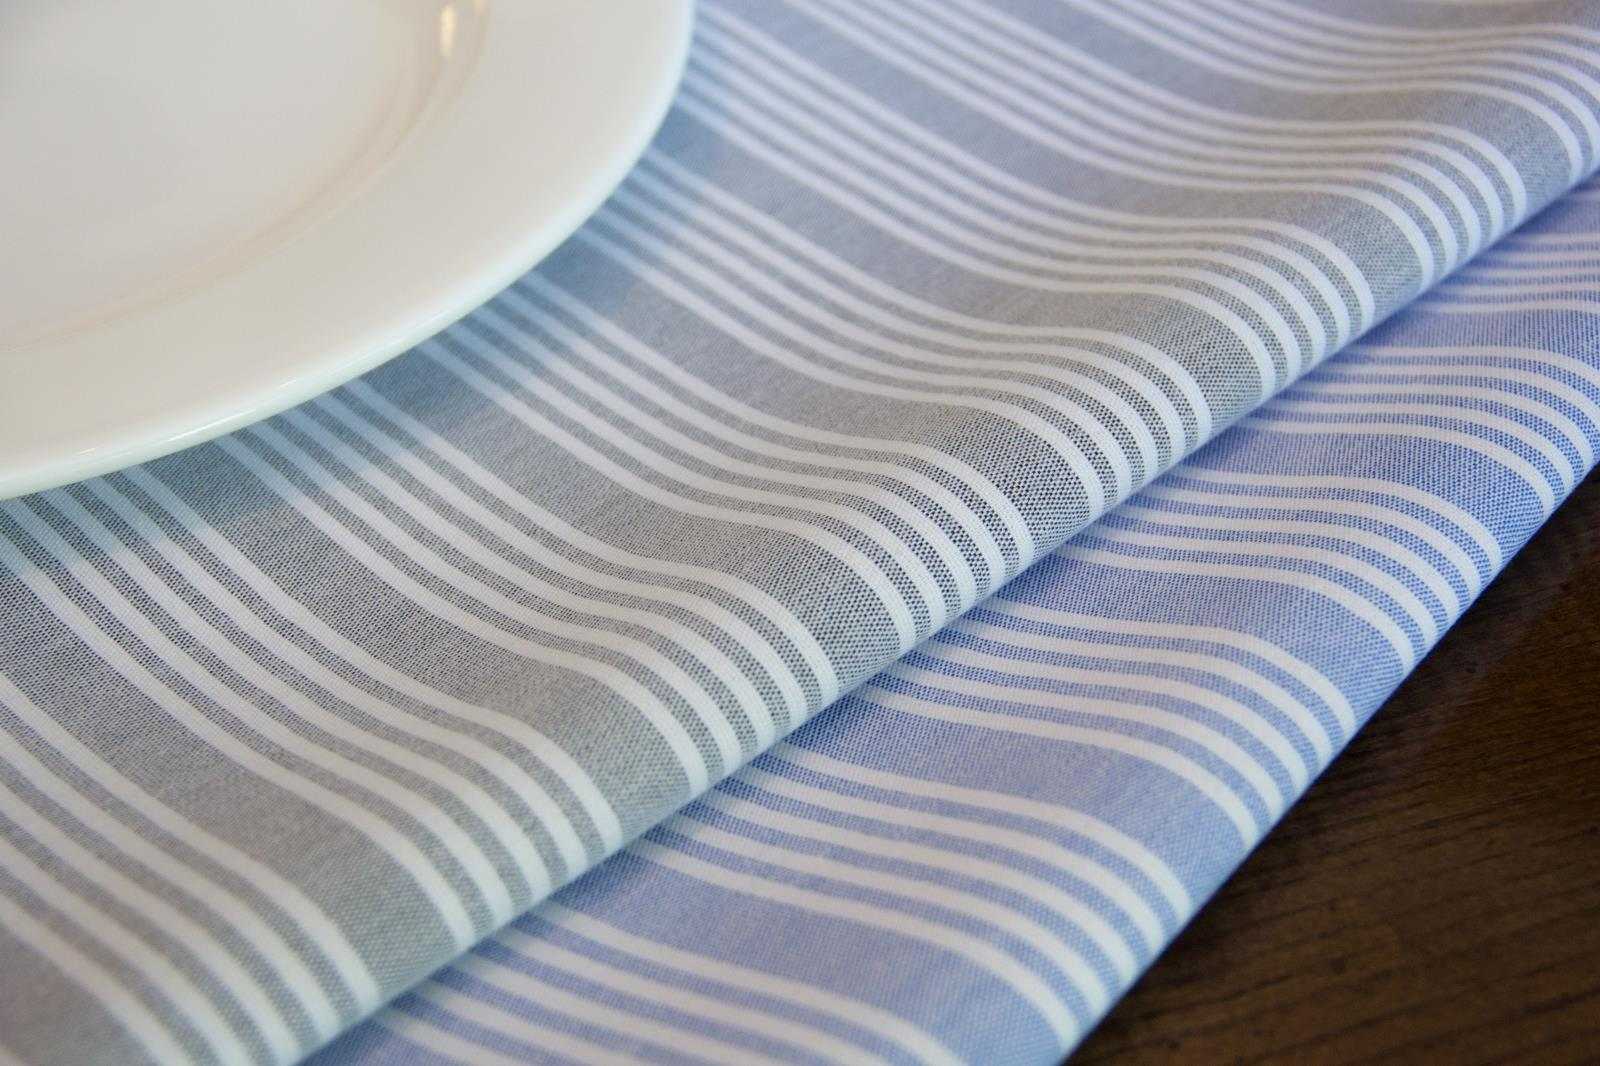 Milliken_Ticking_Unique_Fabrics_Napkins.jpg